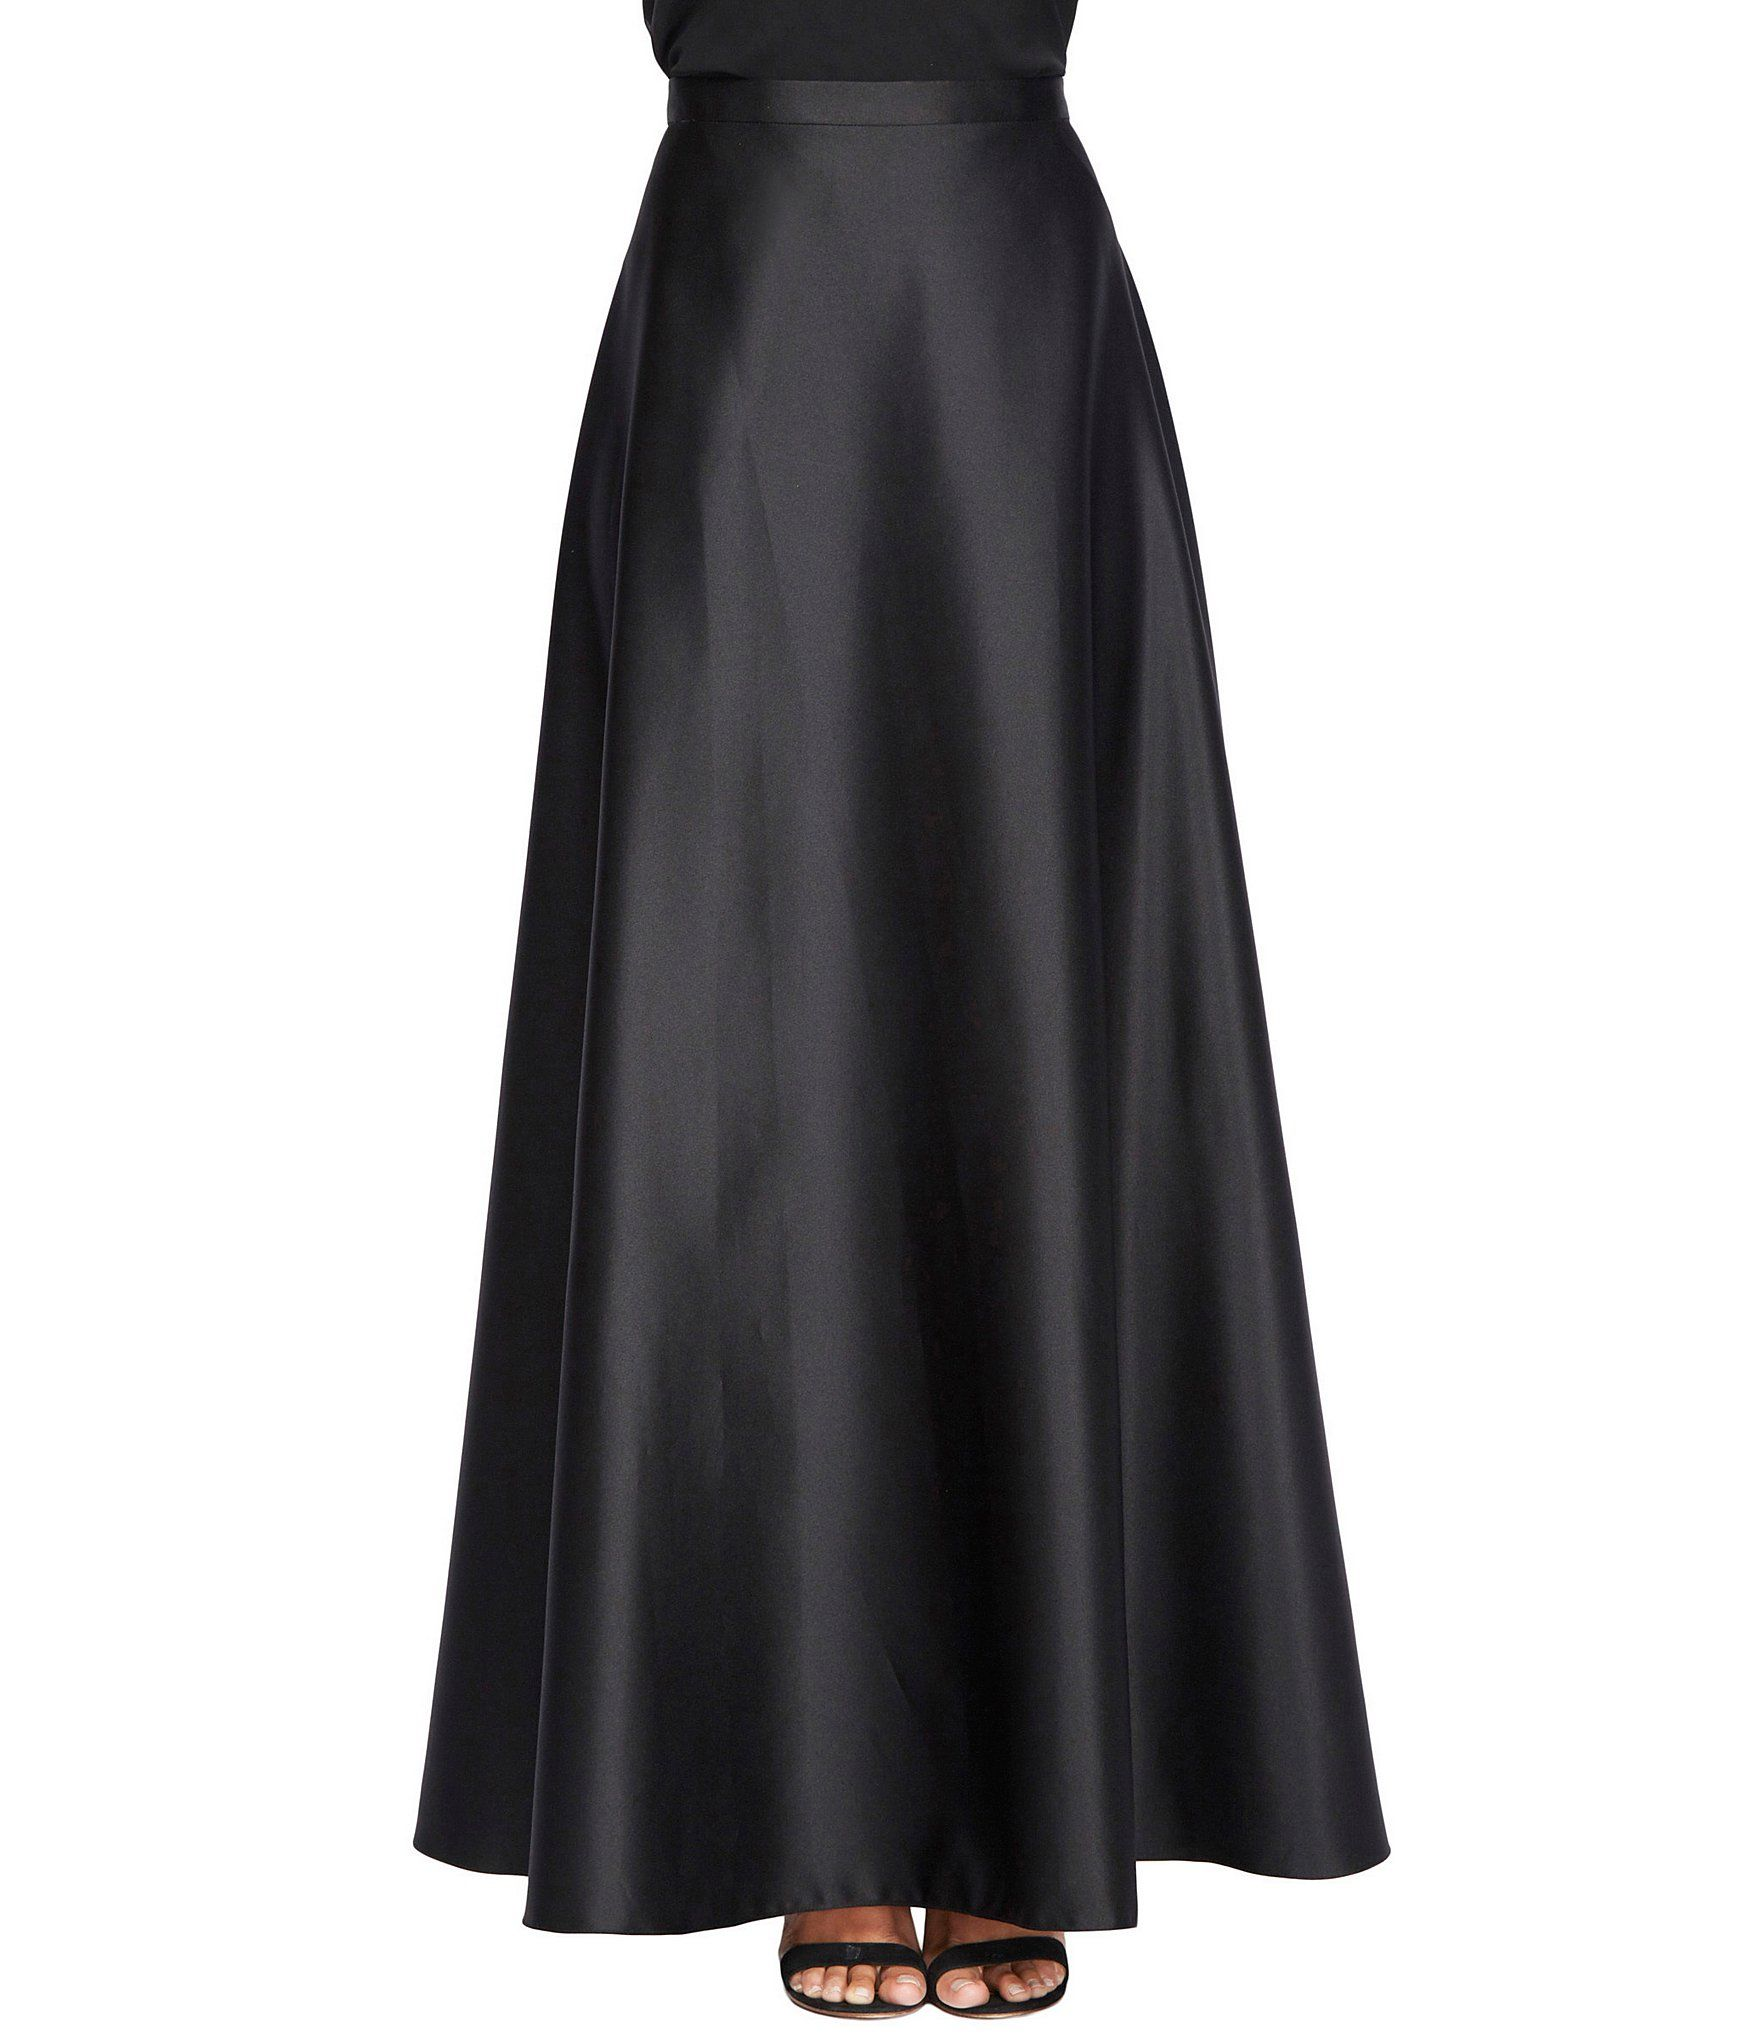 c52d77be1e4 Shop for Alex Evenings Petite Long Illusion A-Line Skirt at Dillards.com.  with pockets in Peties